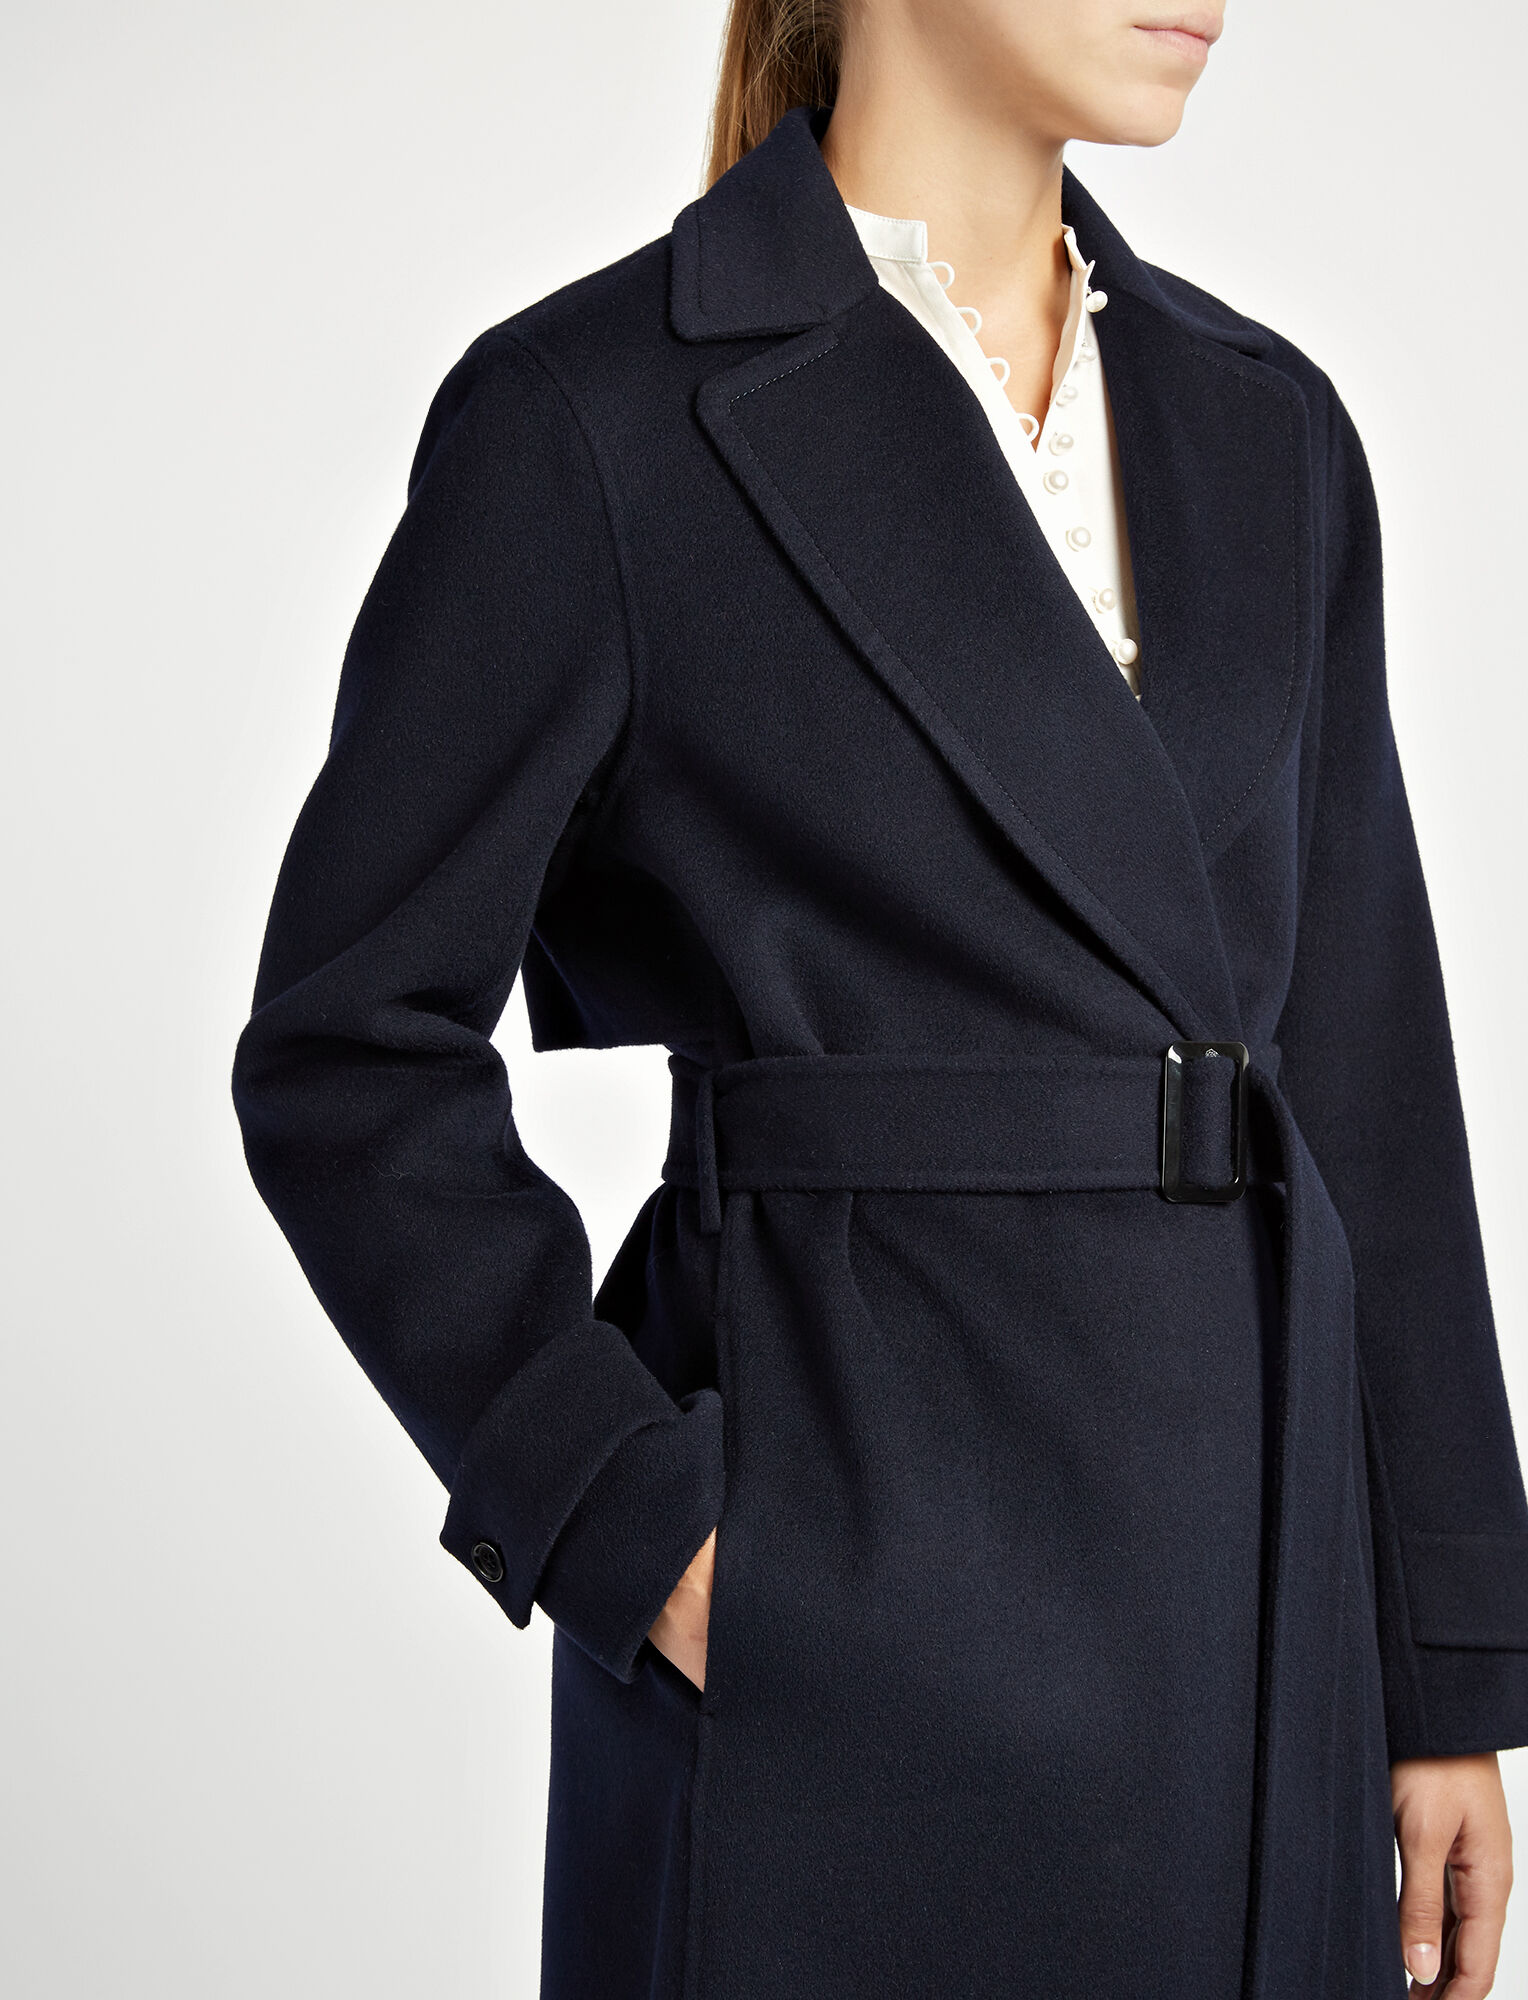 Joseph, Double Face Cashmere Dale Coat, in NAVY